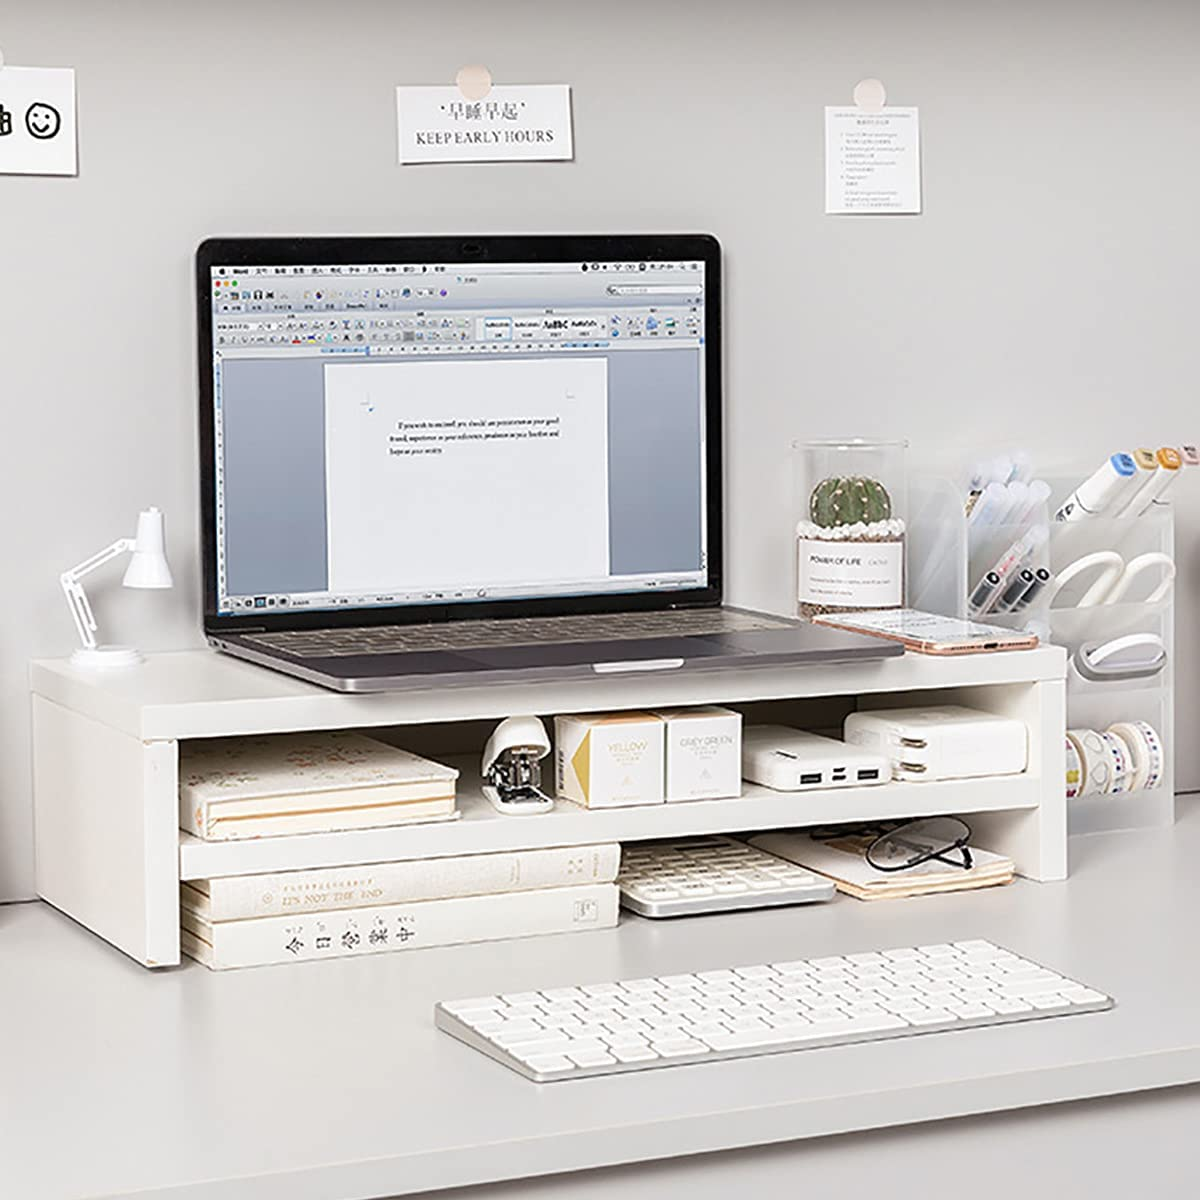 Monitor Stand Riser, 2 Tiers Wood Monitor Riser Stand, Desktop Ergonomic Monitor Stand Riser for Computer, Notebook, Printer Holder White(19.49x7.87x4.72 inch)